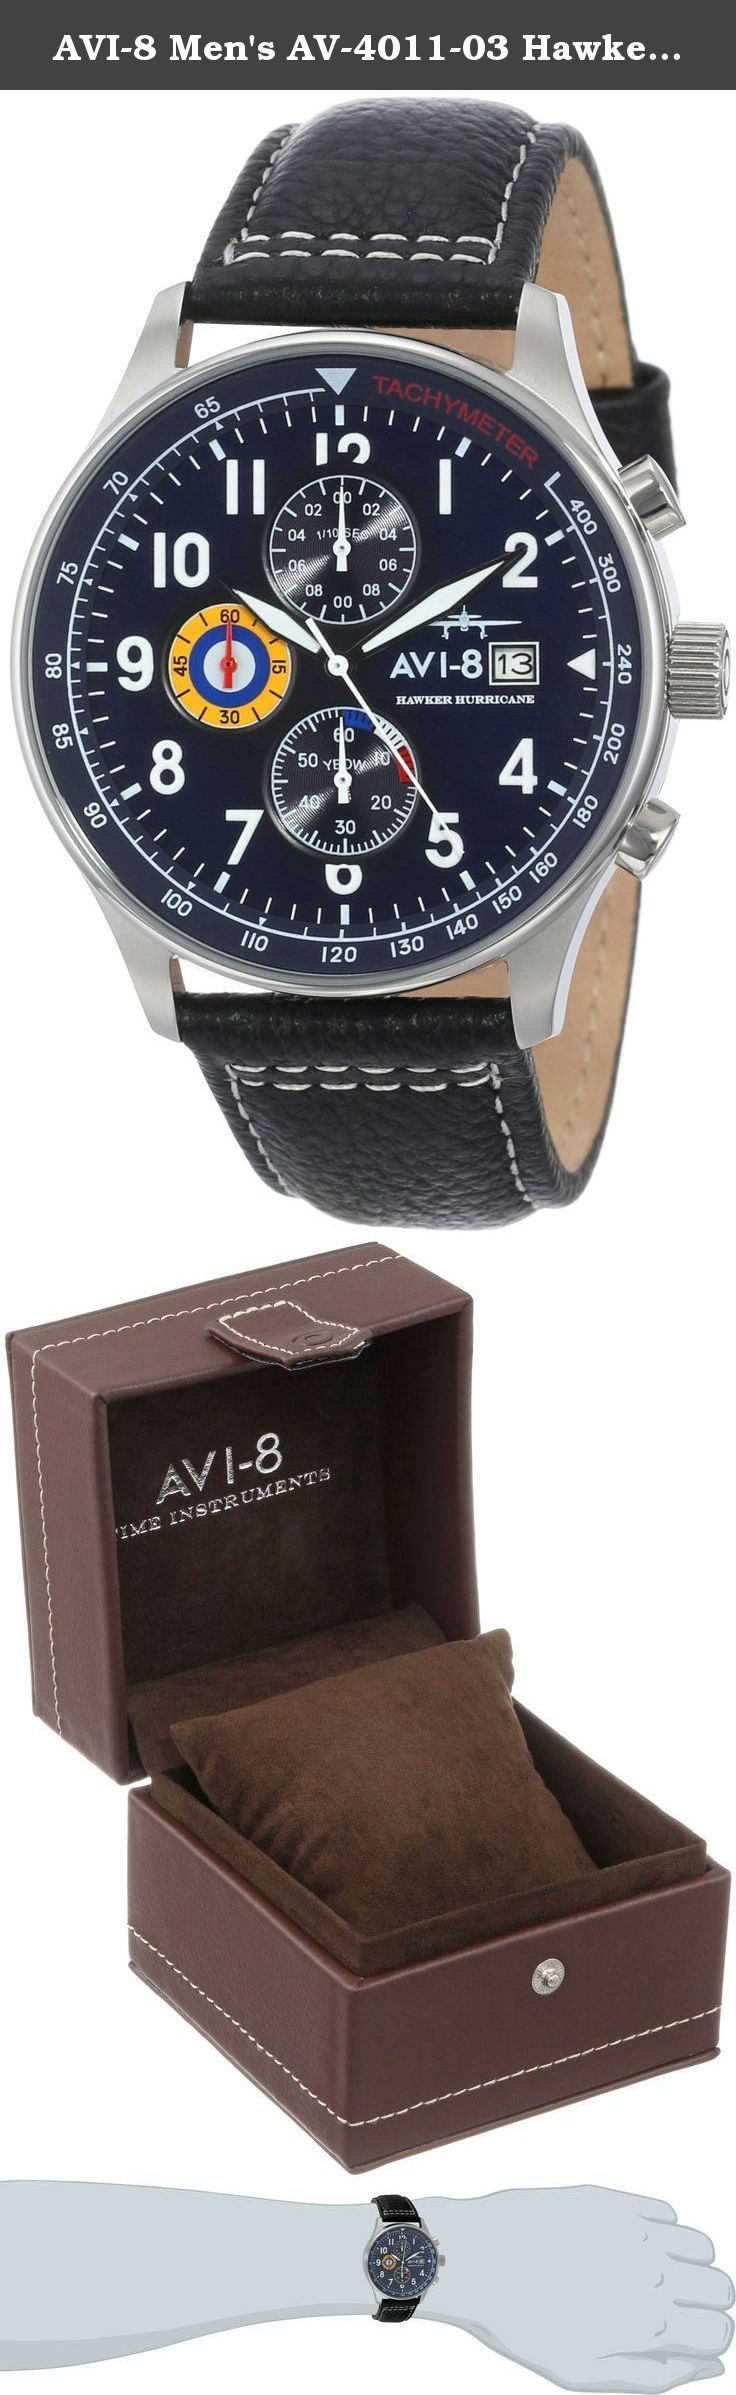 AVI-8 Men's AV-4011-03 Hawker Hurricane Analog Japanese-Quartz Black Watch. Just like the incredible force of the Air Force fighter plane, the rustic AV-4011-0A Hawker Hurricane Watch by AVI-8 takes charge of your schedule. This stylish watch features a classic Japanese quartz analog movement and date indicator inside a mineral crystal face material, which is attached to a durable leather strap. Stainless steel provides a sleek and tough housing material that helps make this watch...